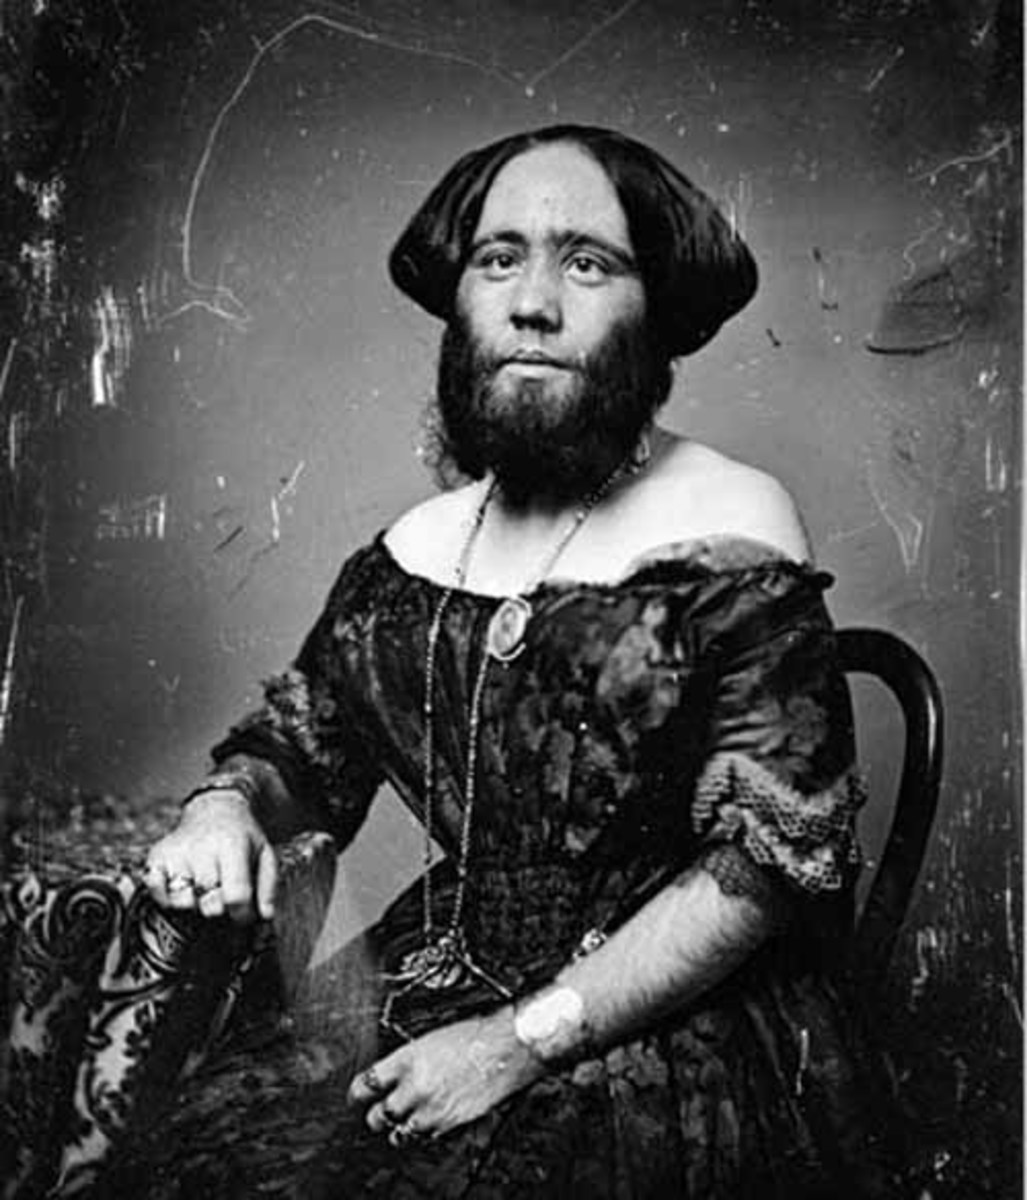 Clofullia participated in a sideshow at P.T. Barnum's American Museum in New York City alongside her young son, who inherited her hypertrichosis.